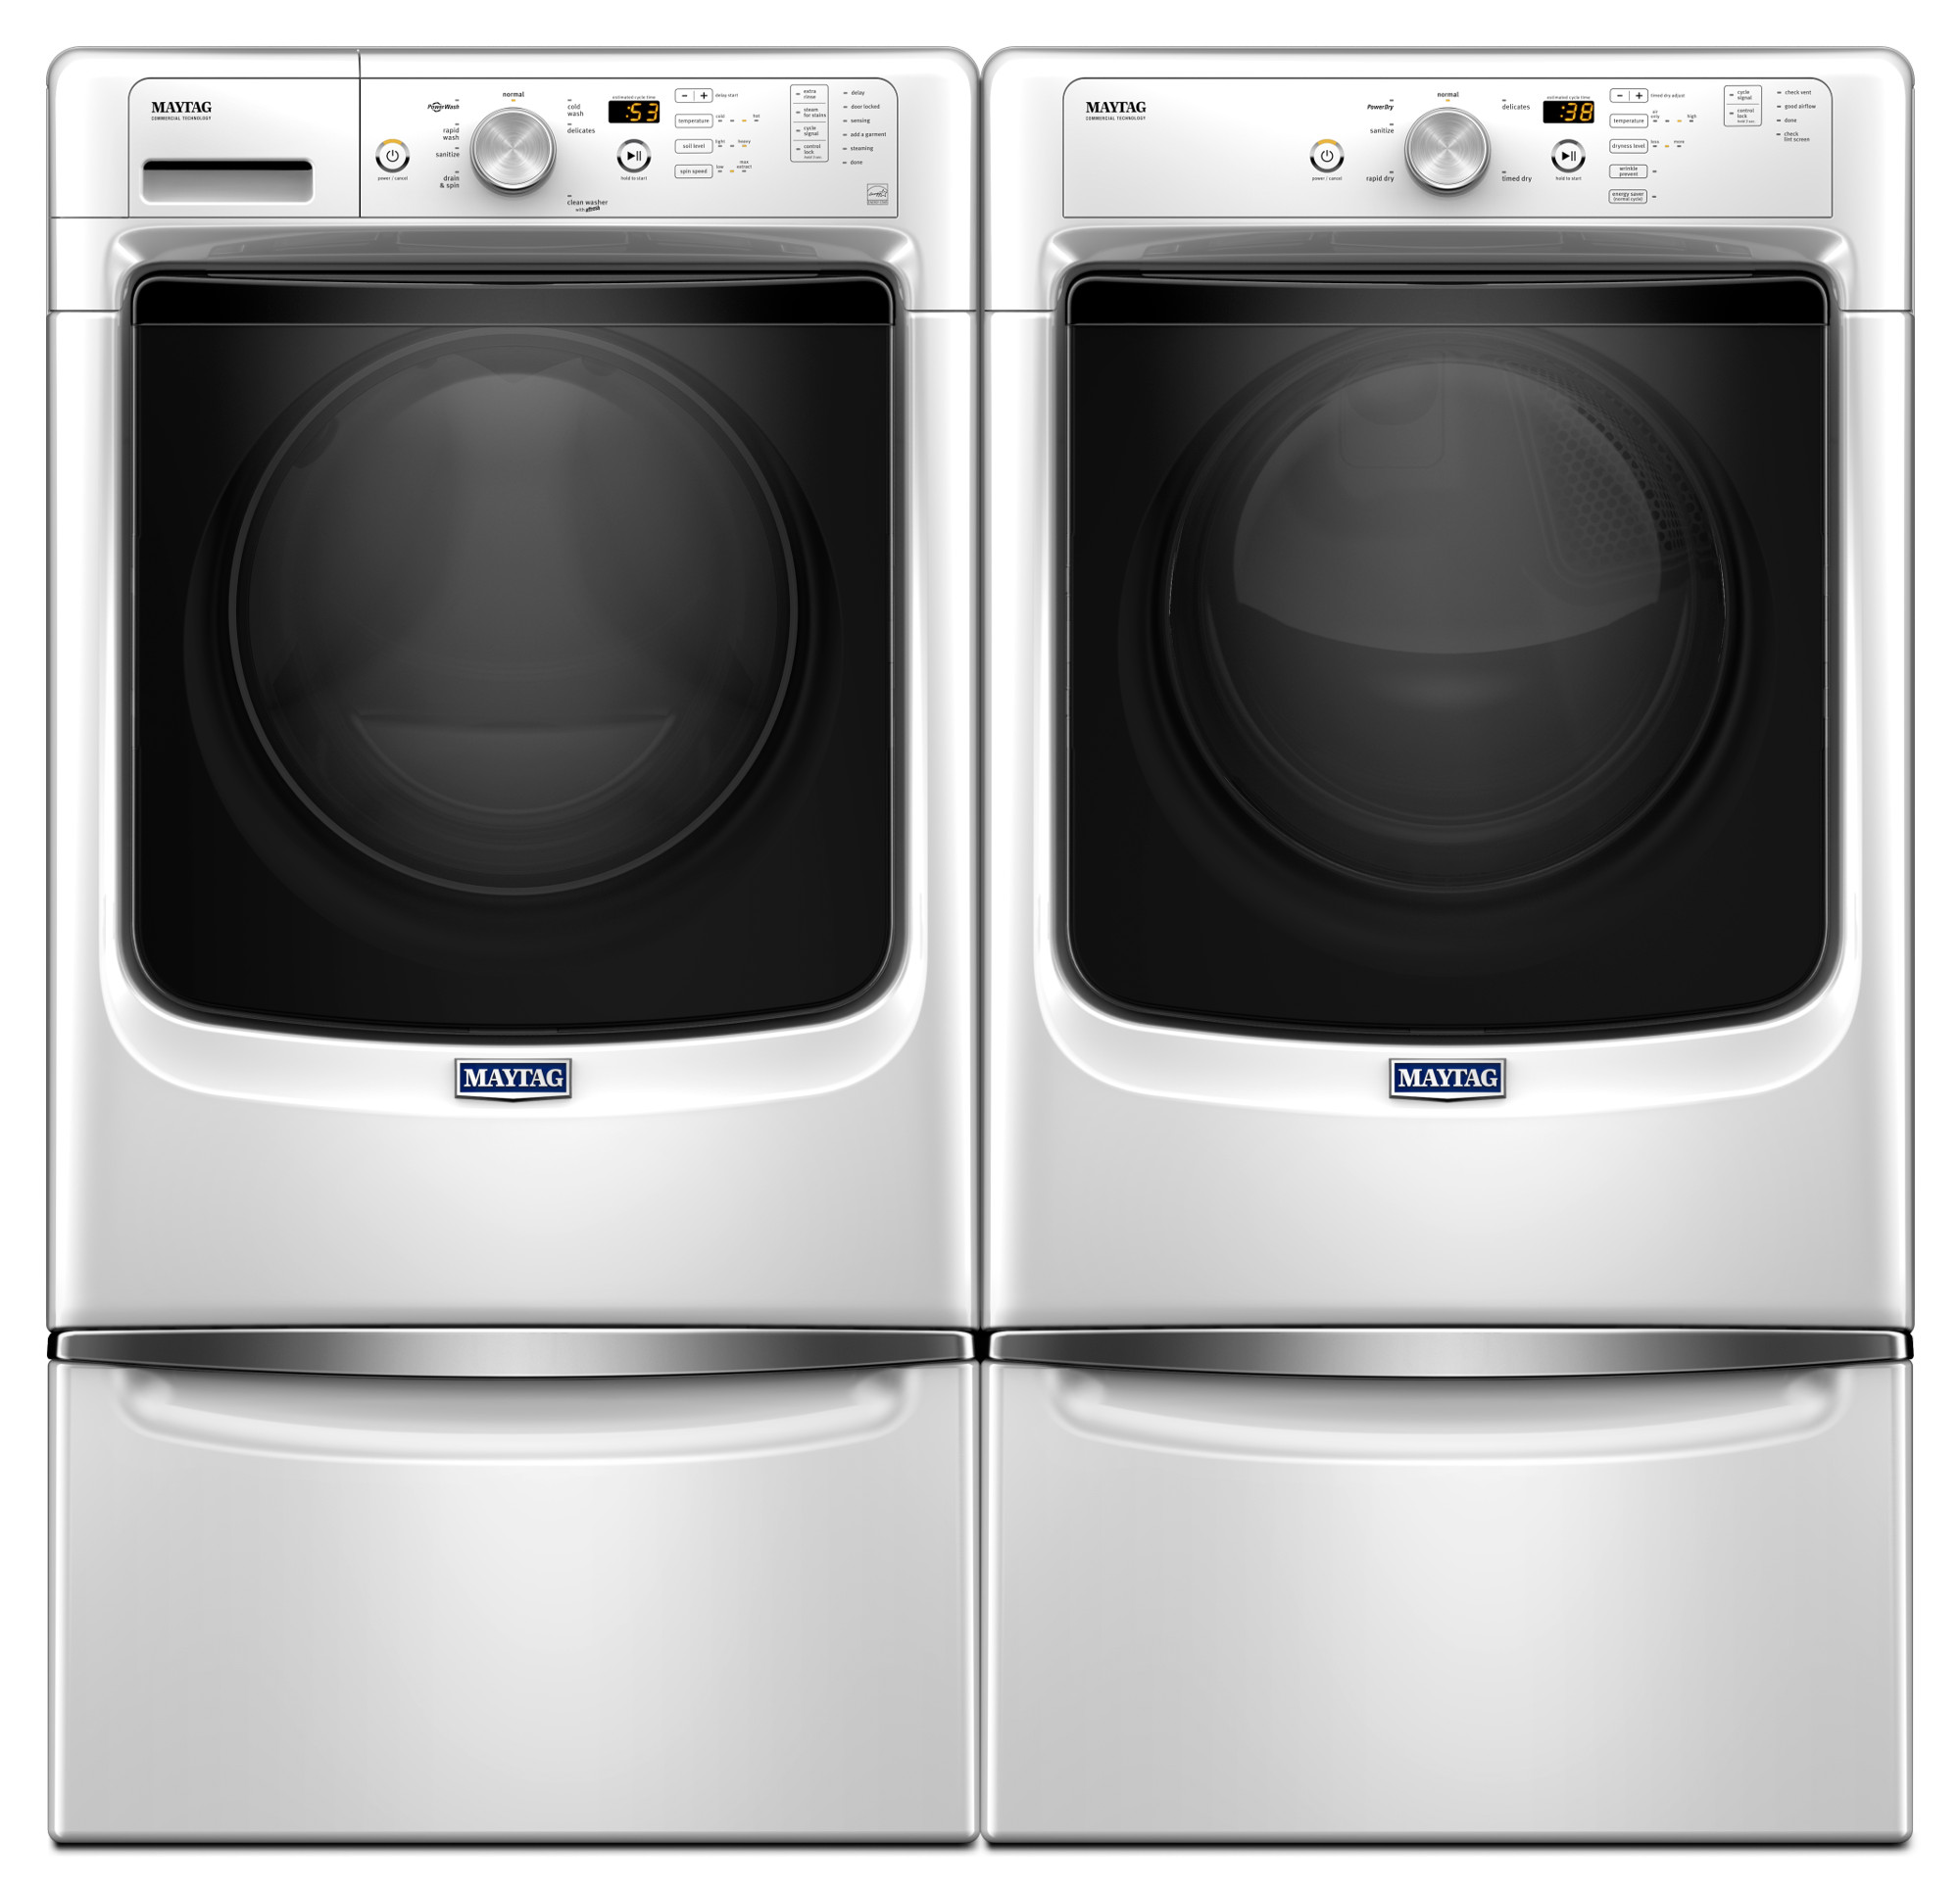 Maytag MED3500FW 7.4 cu. ft. Electric Dryer - White